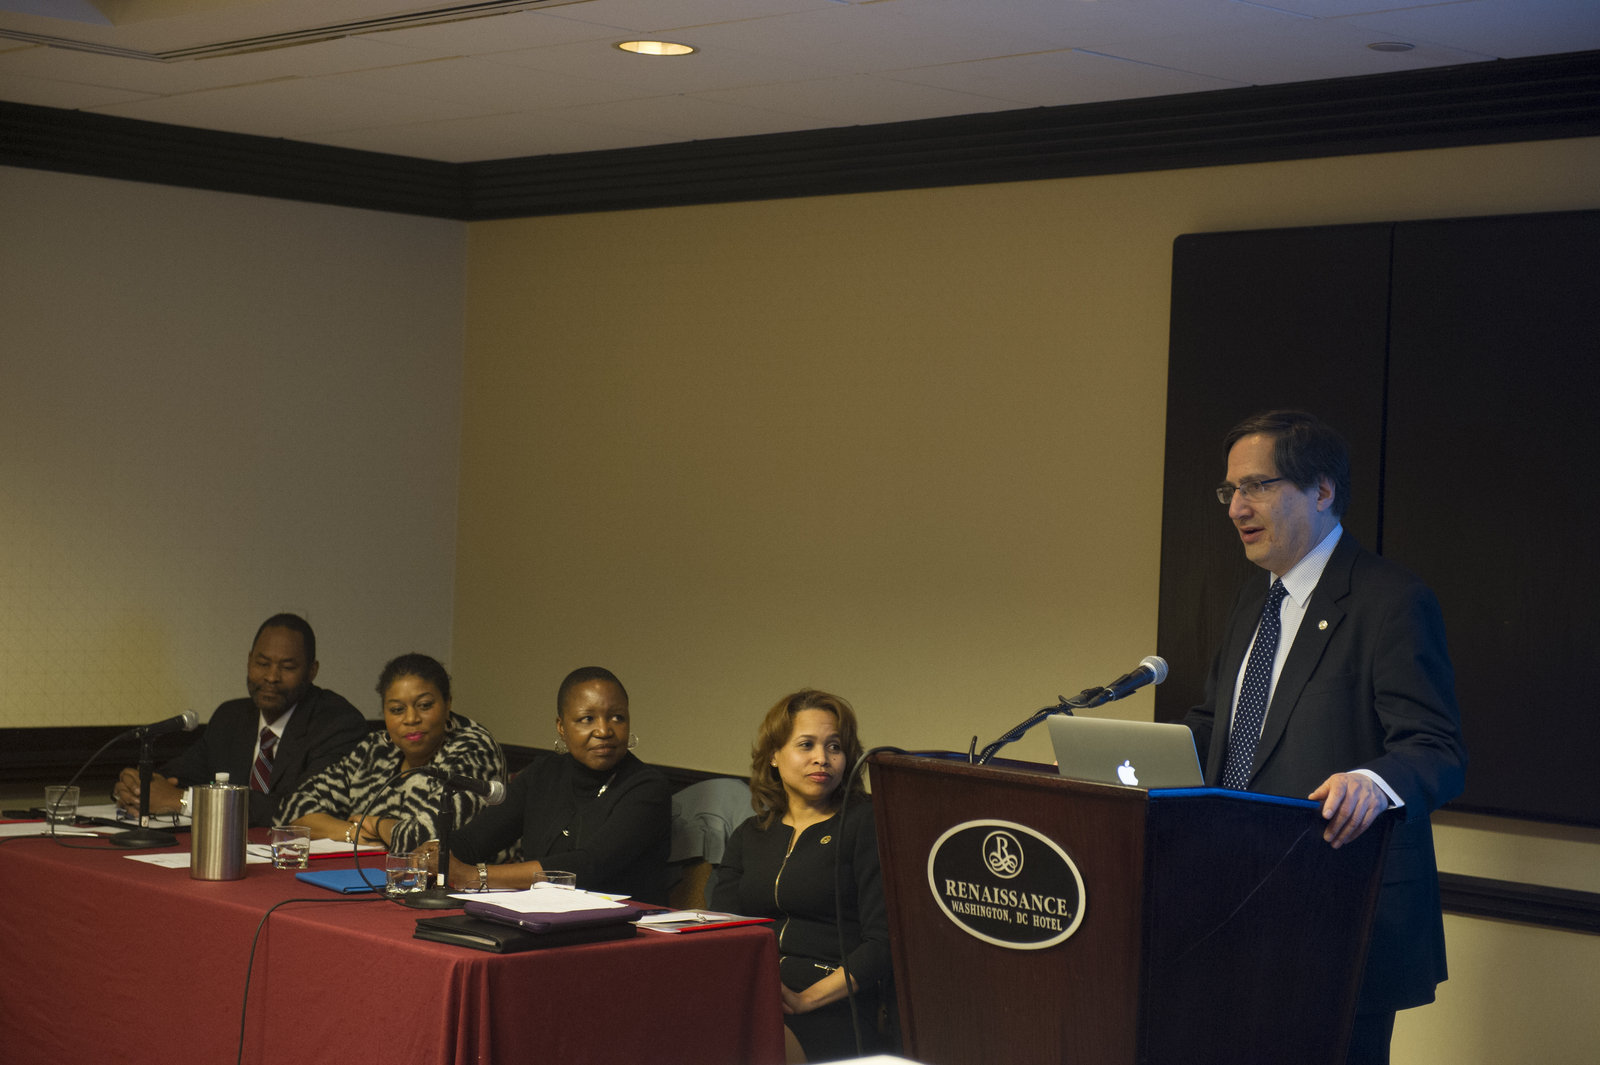 Second Annual Section 3 Summit, [at Renaissance Washington, D.C. Hotel, on programs for public housing residents under HUD Act, Section 3]